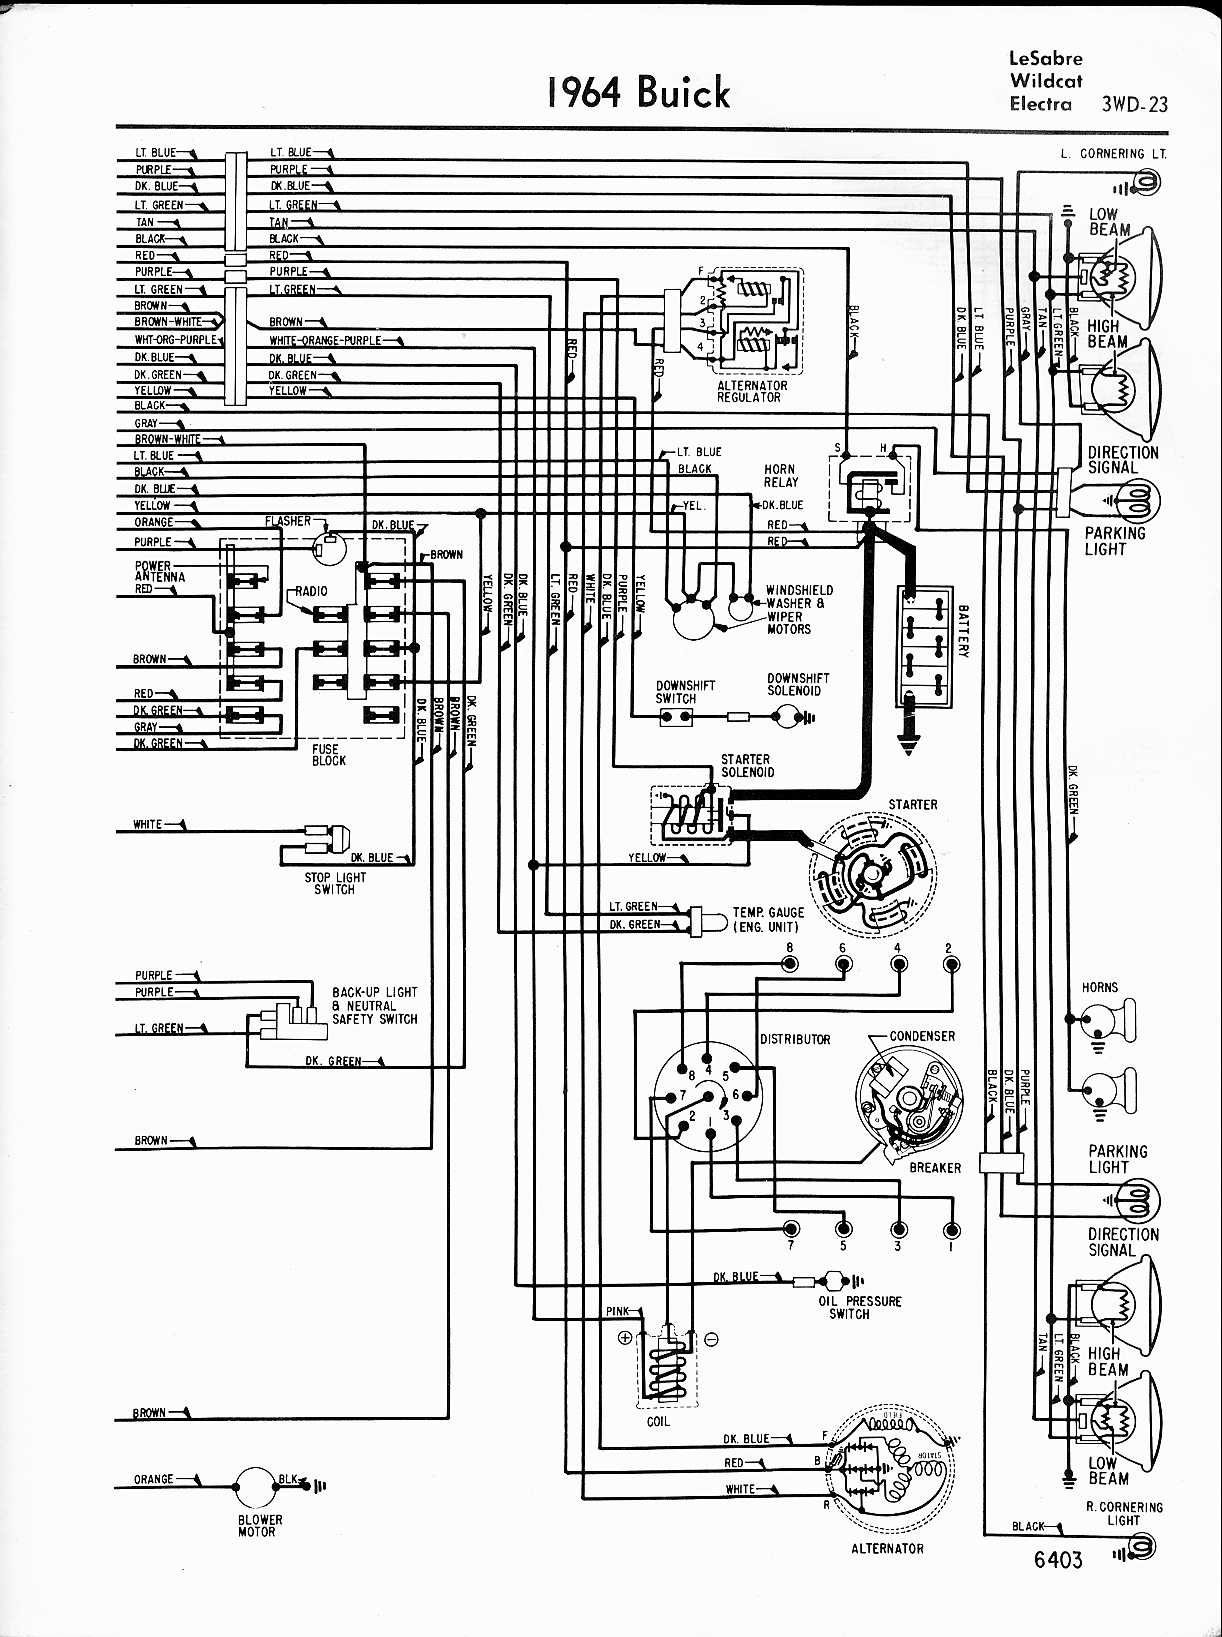 2001 jetta window wiring diagram schematic diagram 1997 Chevy 1500 Tan 2001 jetta window wiring diagram wiring diagram vw jetta wiring diagram 1997 jetta power window wiring